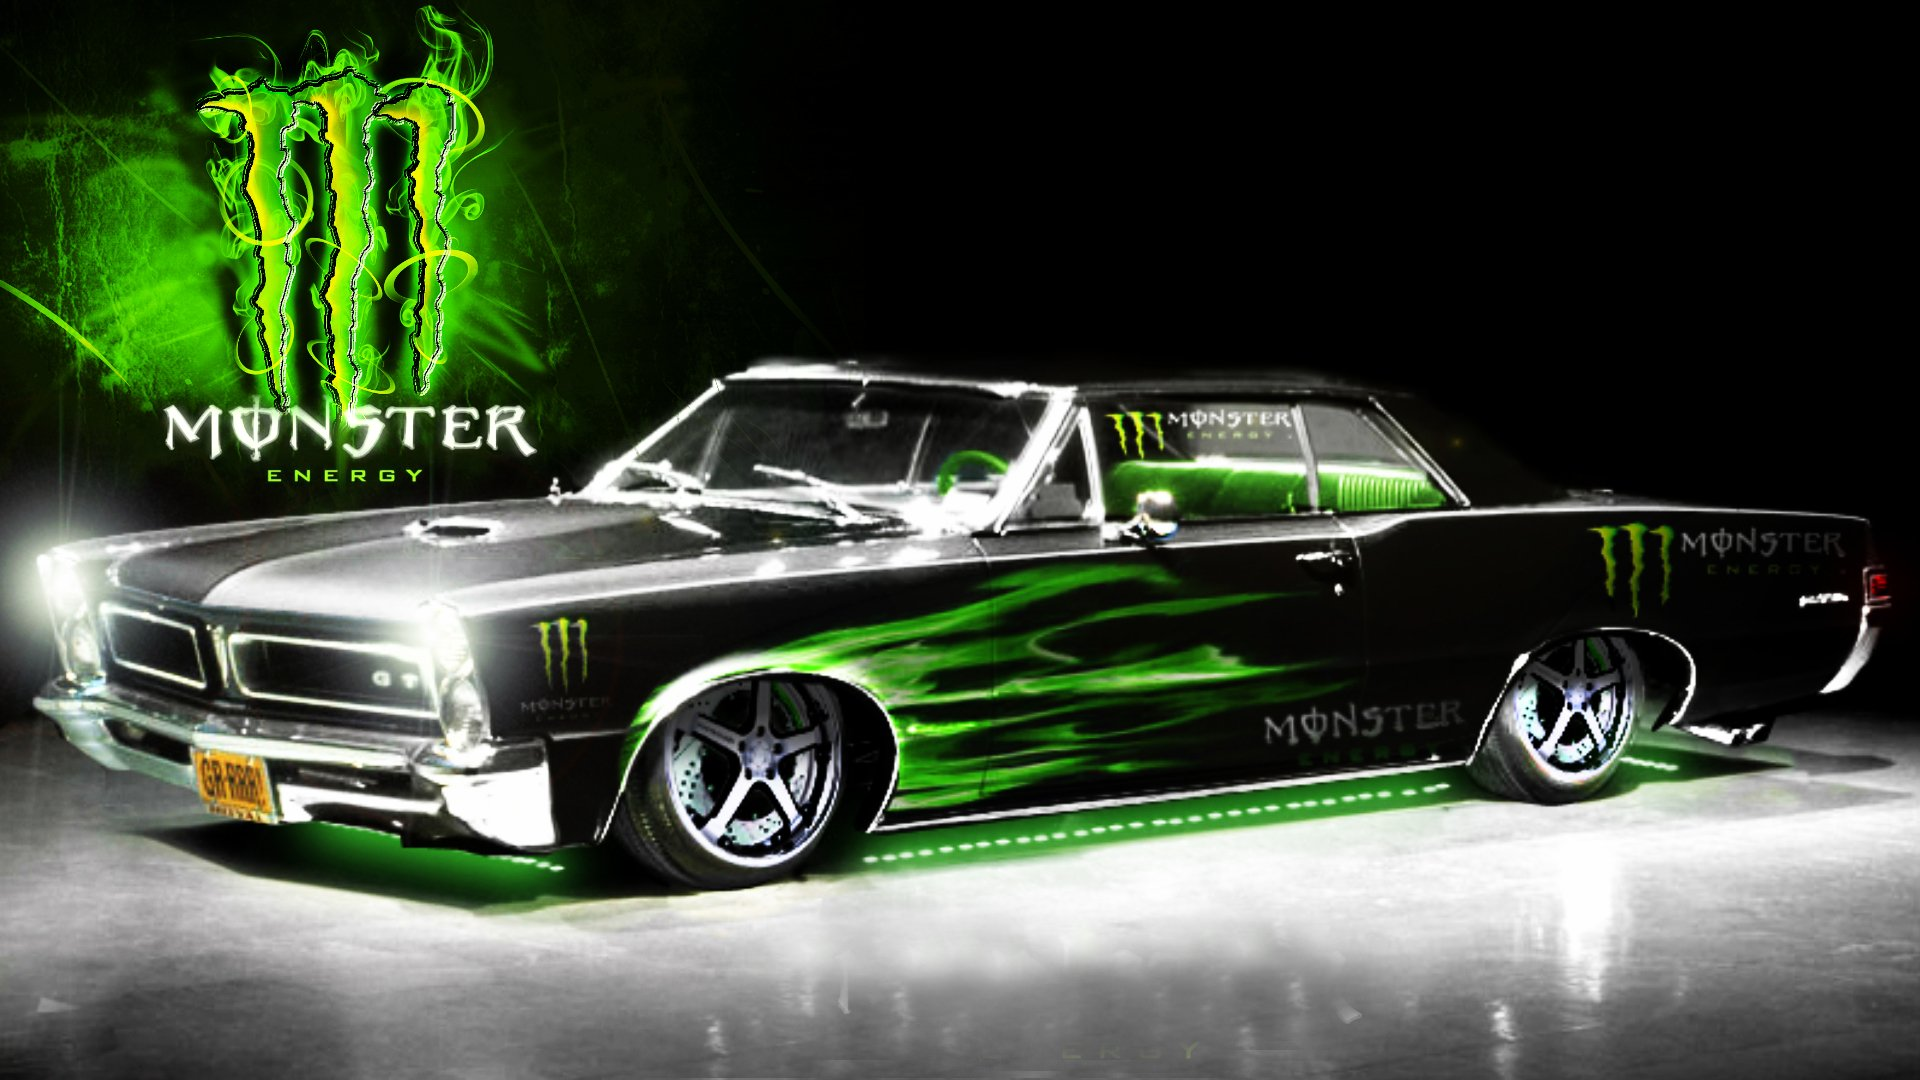 Monster Gto Hd Wallpaper Background Image 1920x1080 Id 560425 Wallpaper Abyss